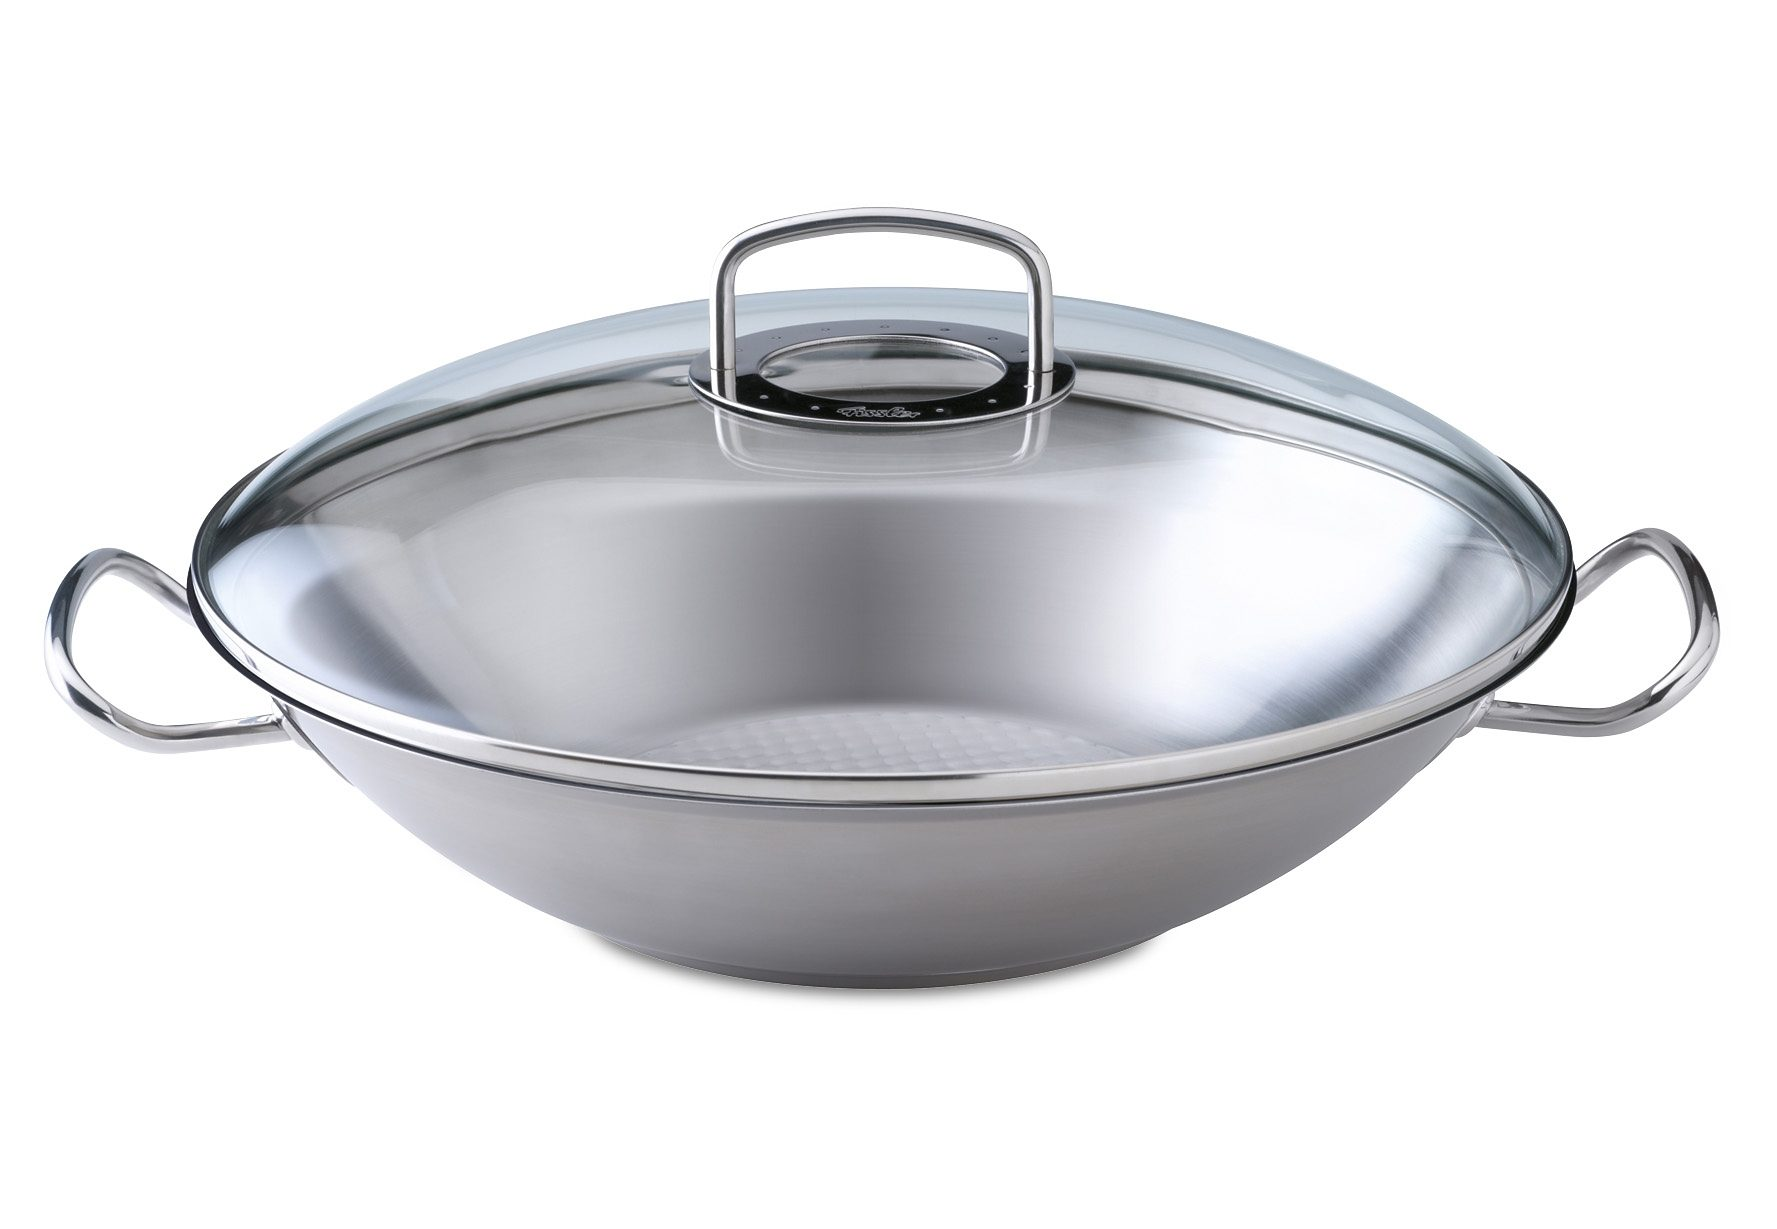 Original-profi collection Wok mit Glasdeckel, Ø 36 cm, 5,7 Liter Fissler